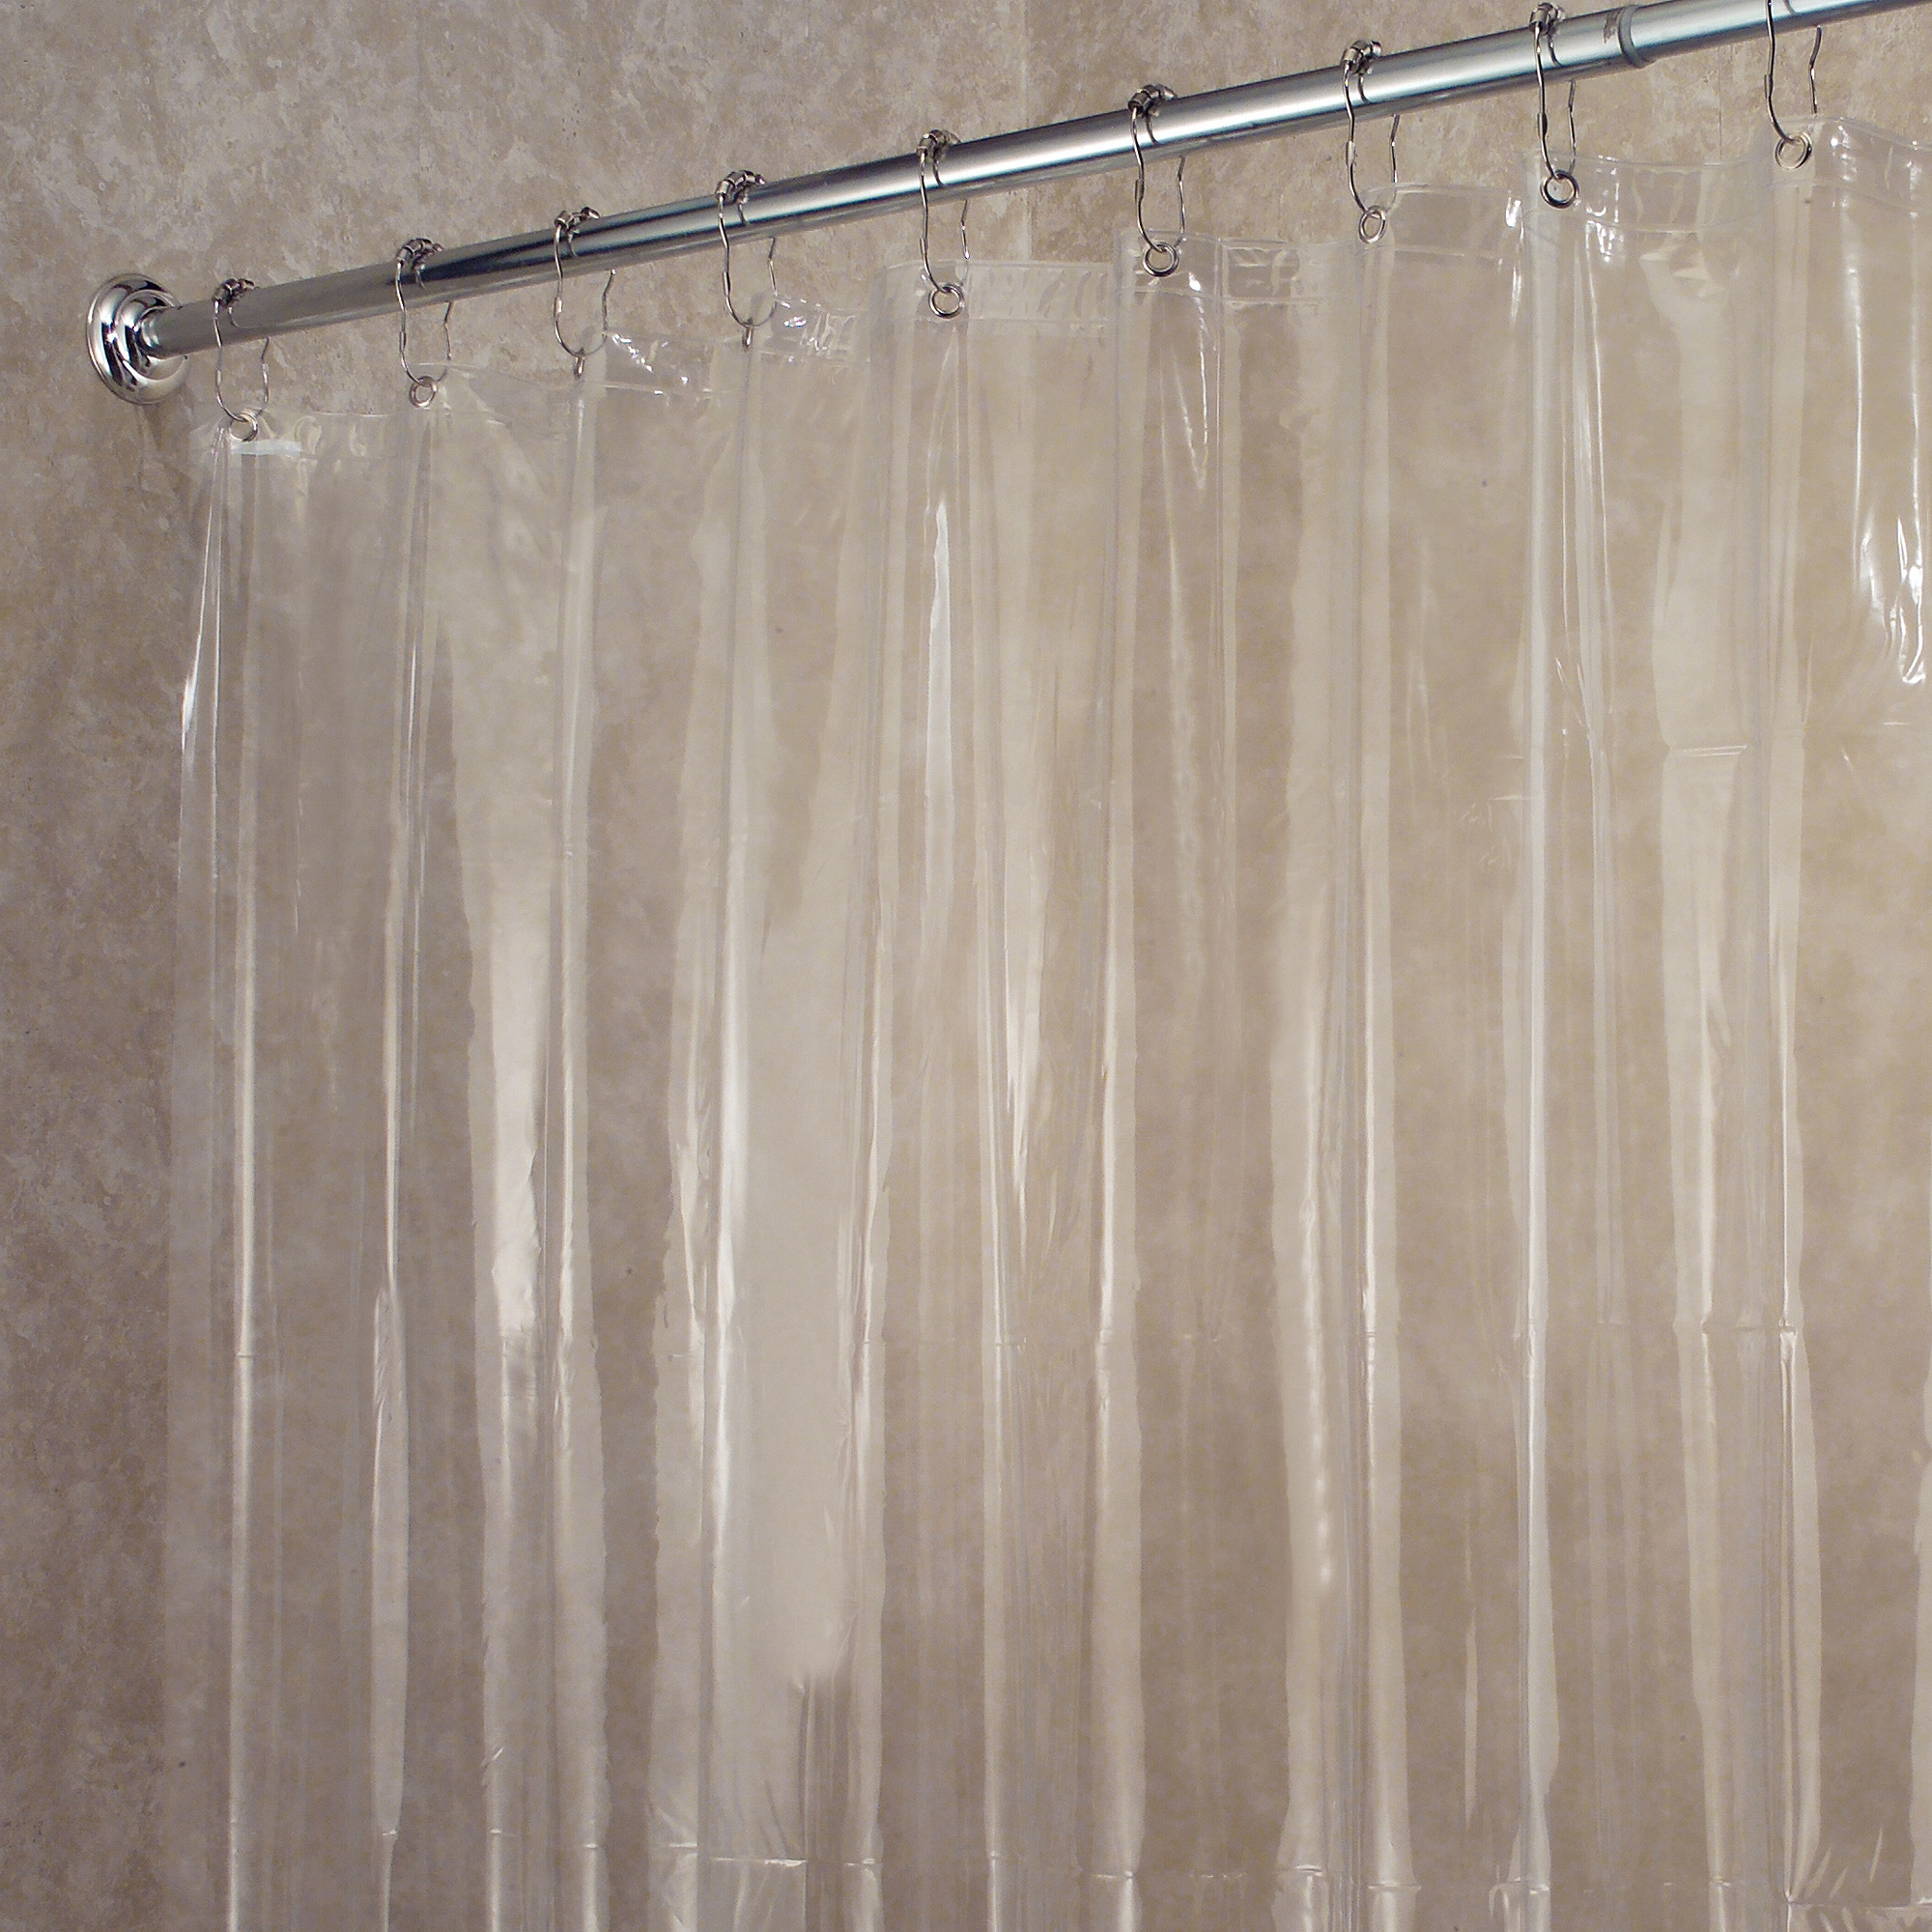 108 Long Shower Curtain 108 Long Clear Shower Curtain Liner Shower Curtains Ideas